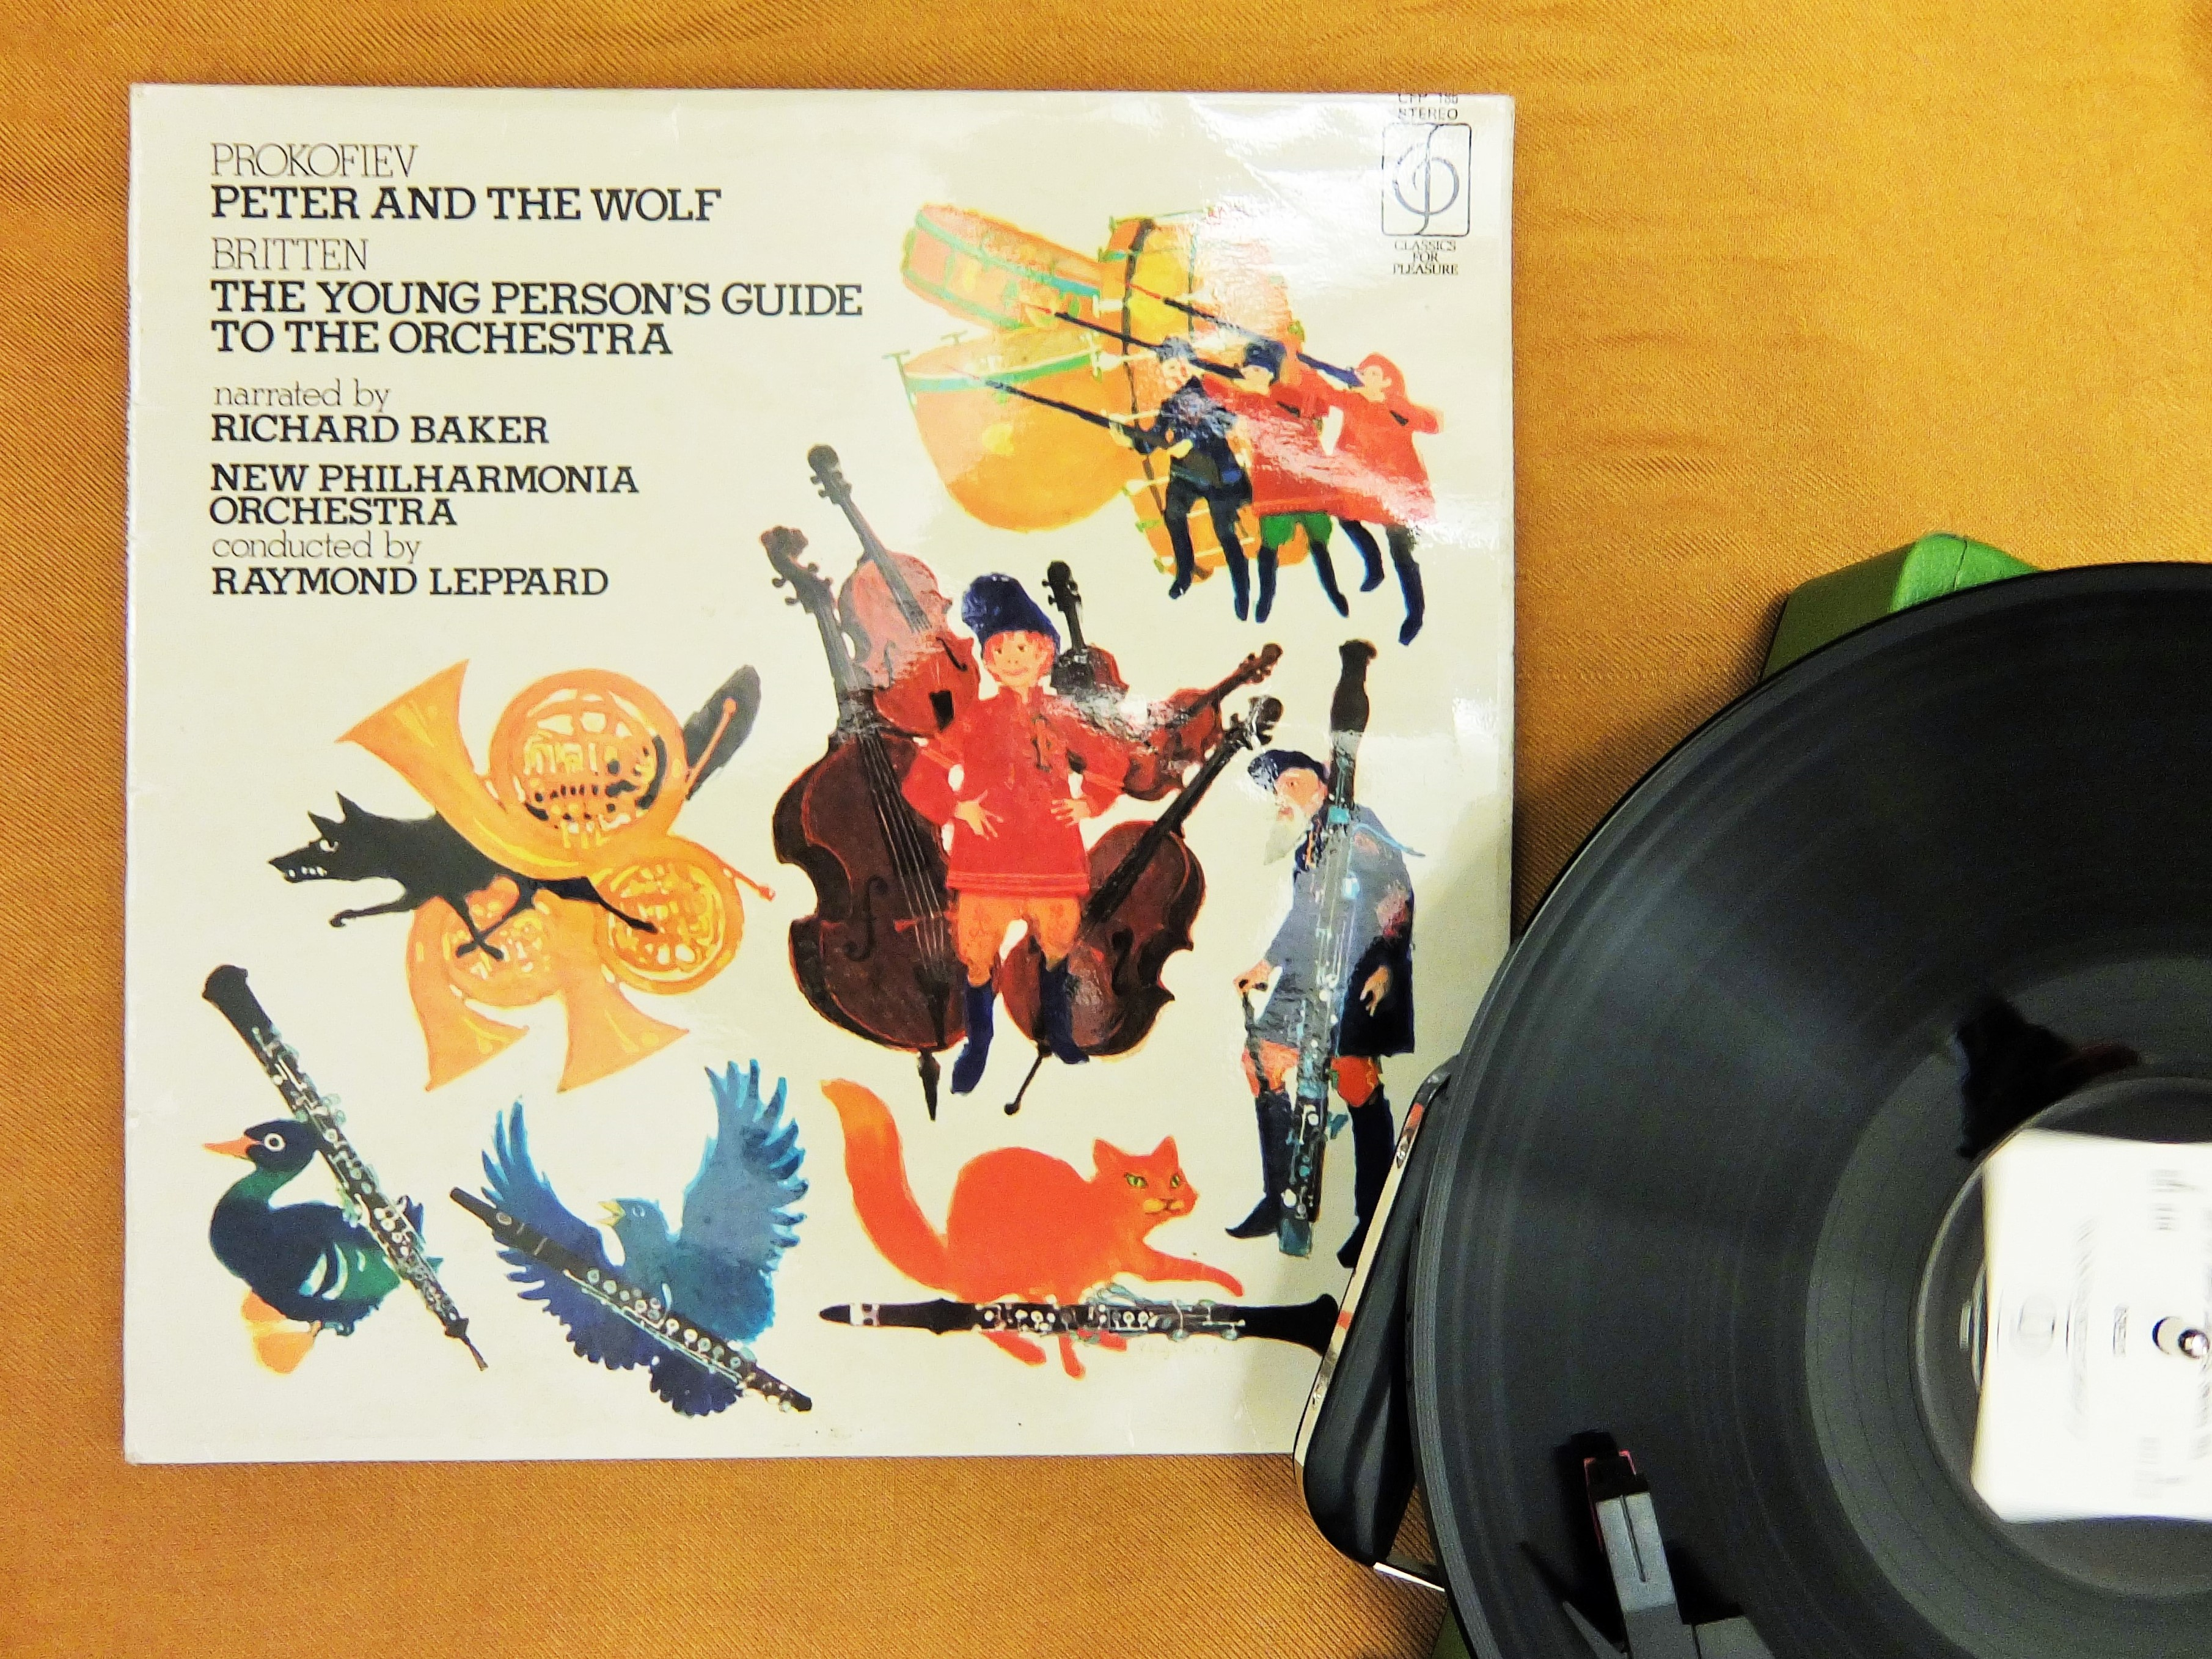 Peter And The Wolf Record